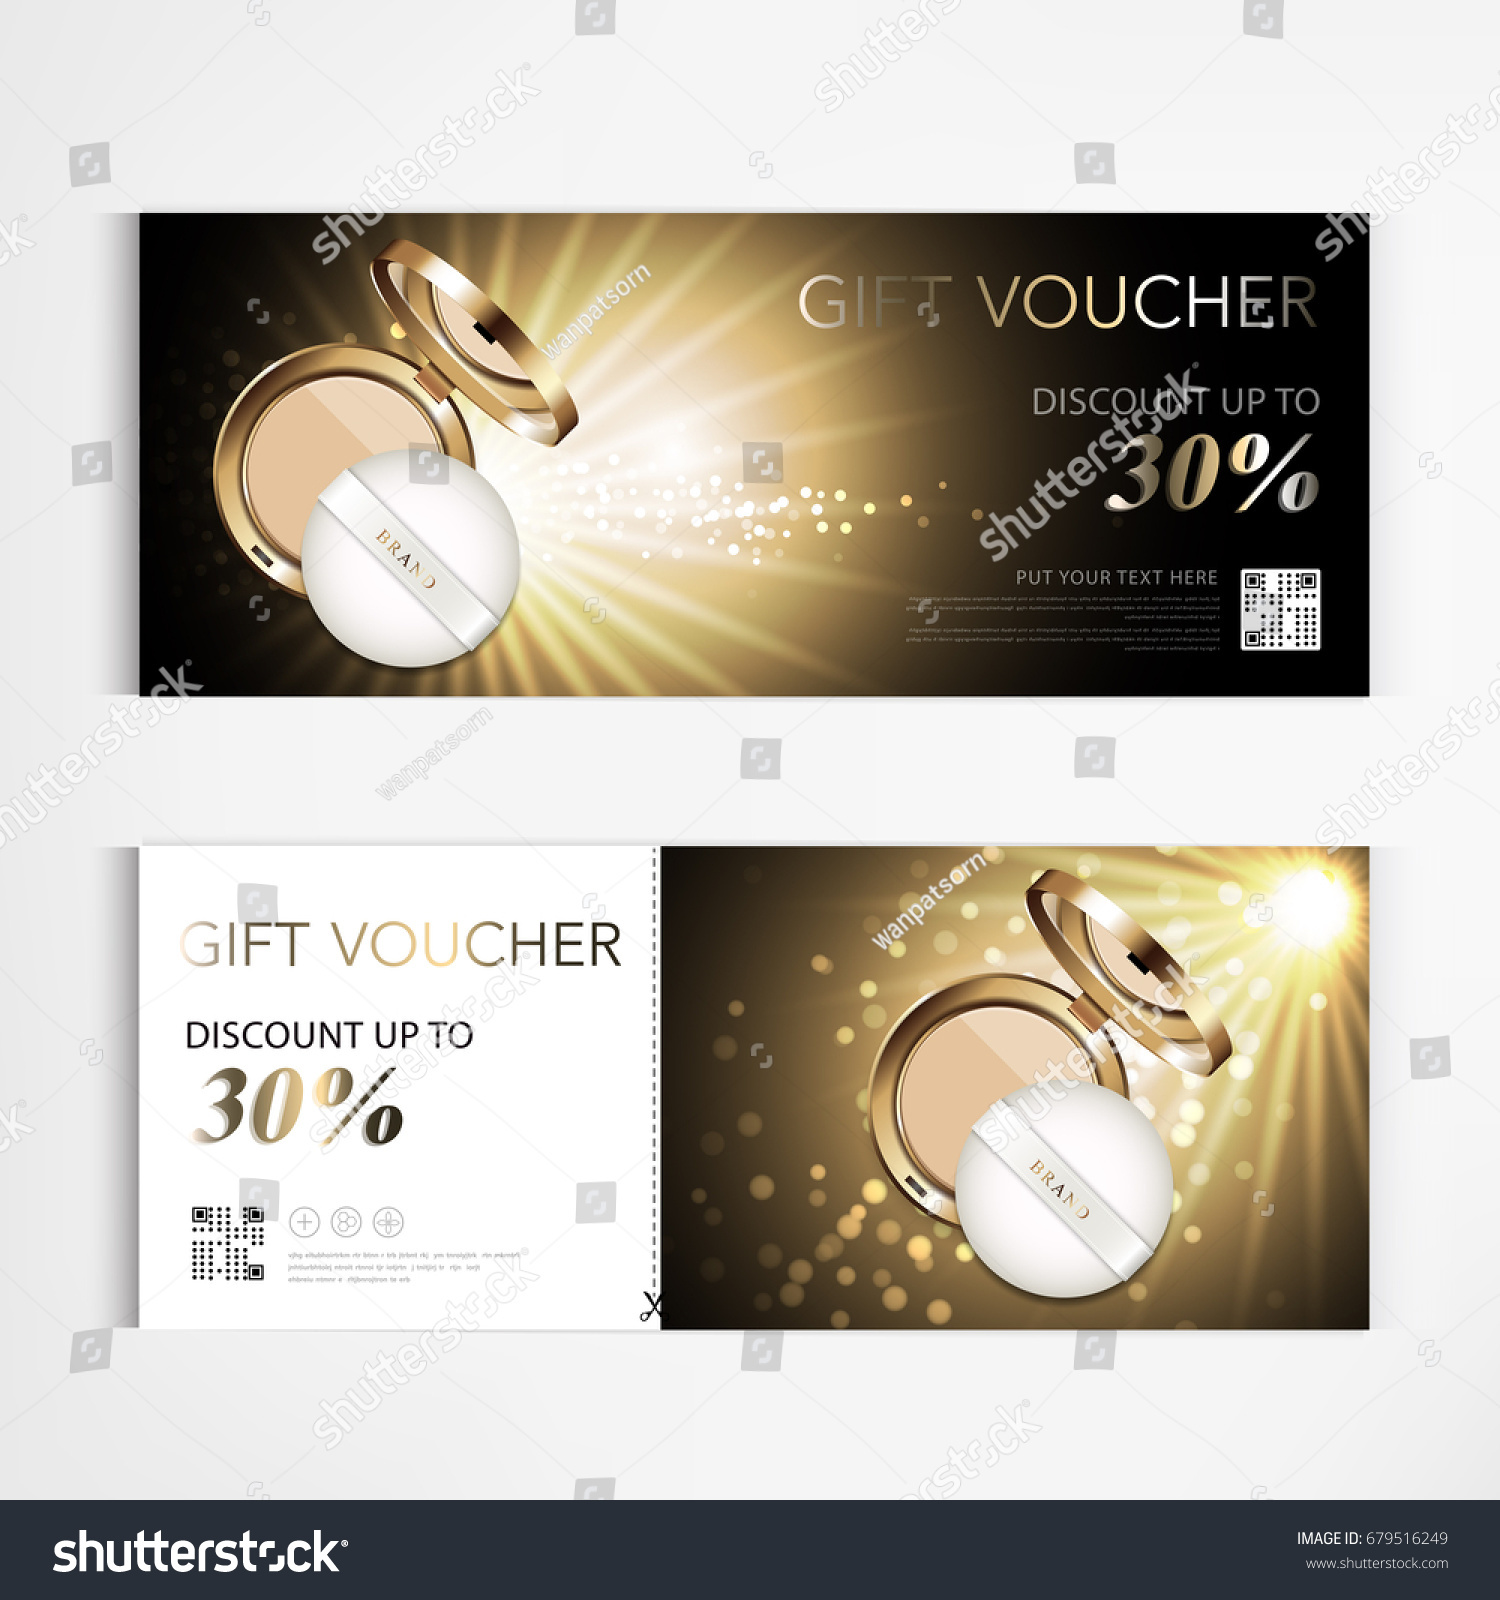 Gift Voucher Cosmetics Luxury Make Up Powder For Annual Sale Blue Packaging Template Vector Design